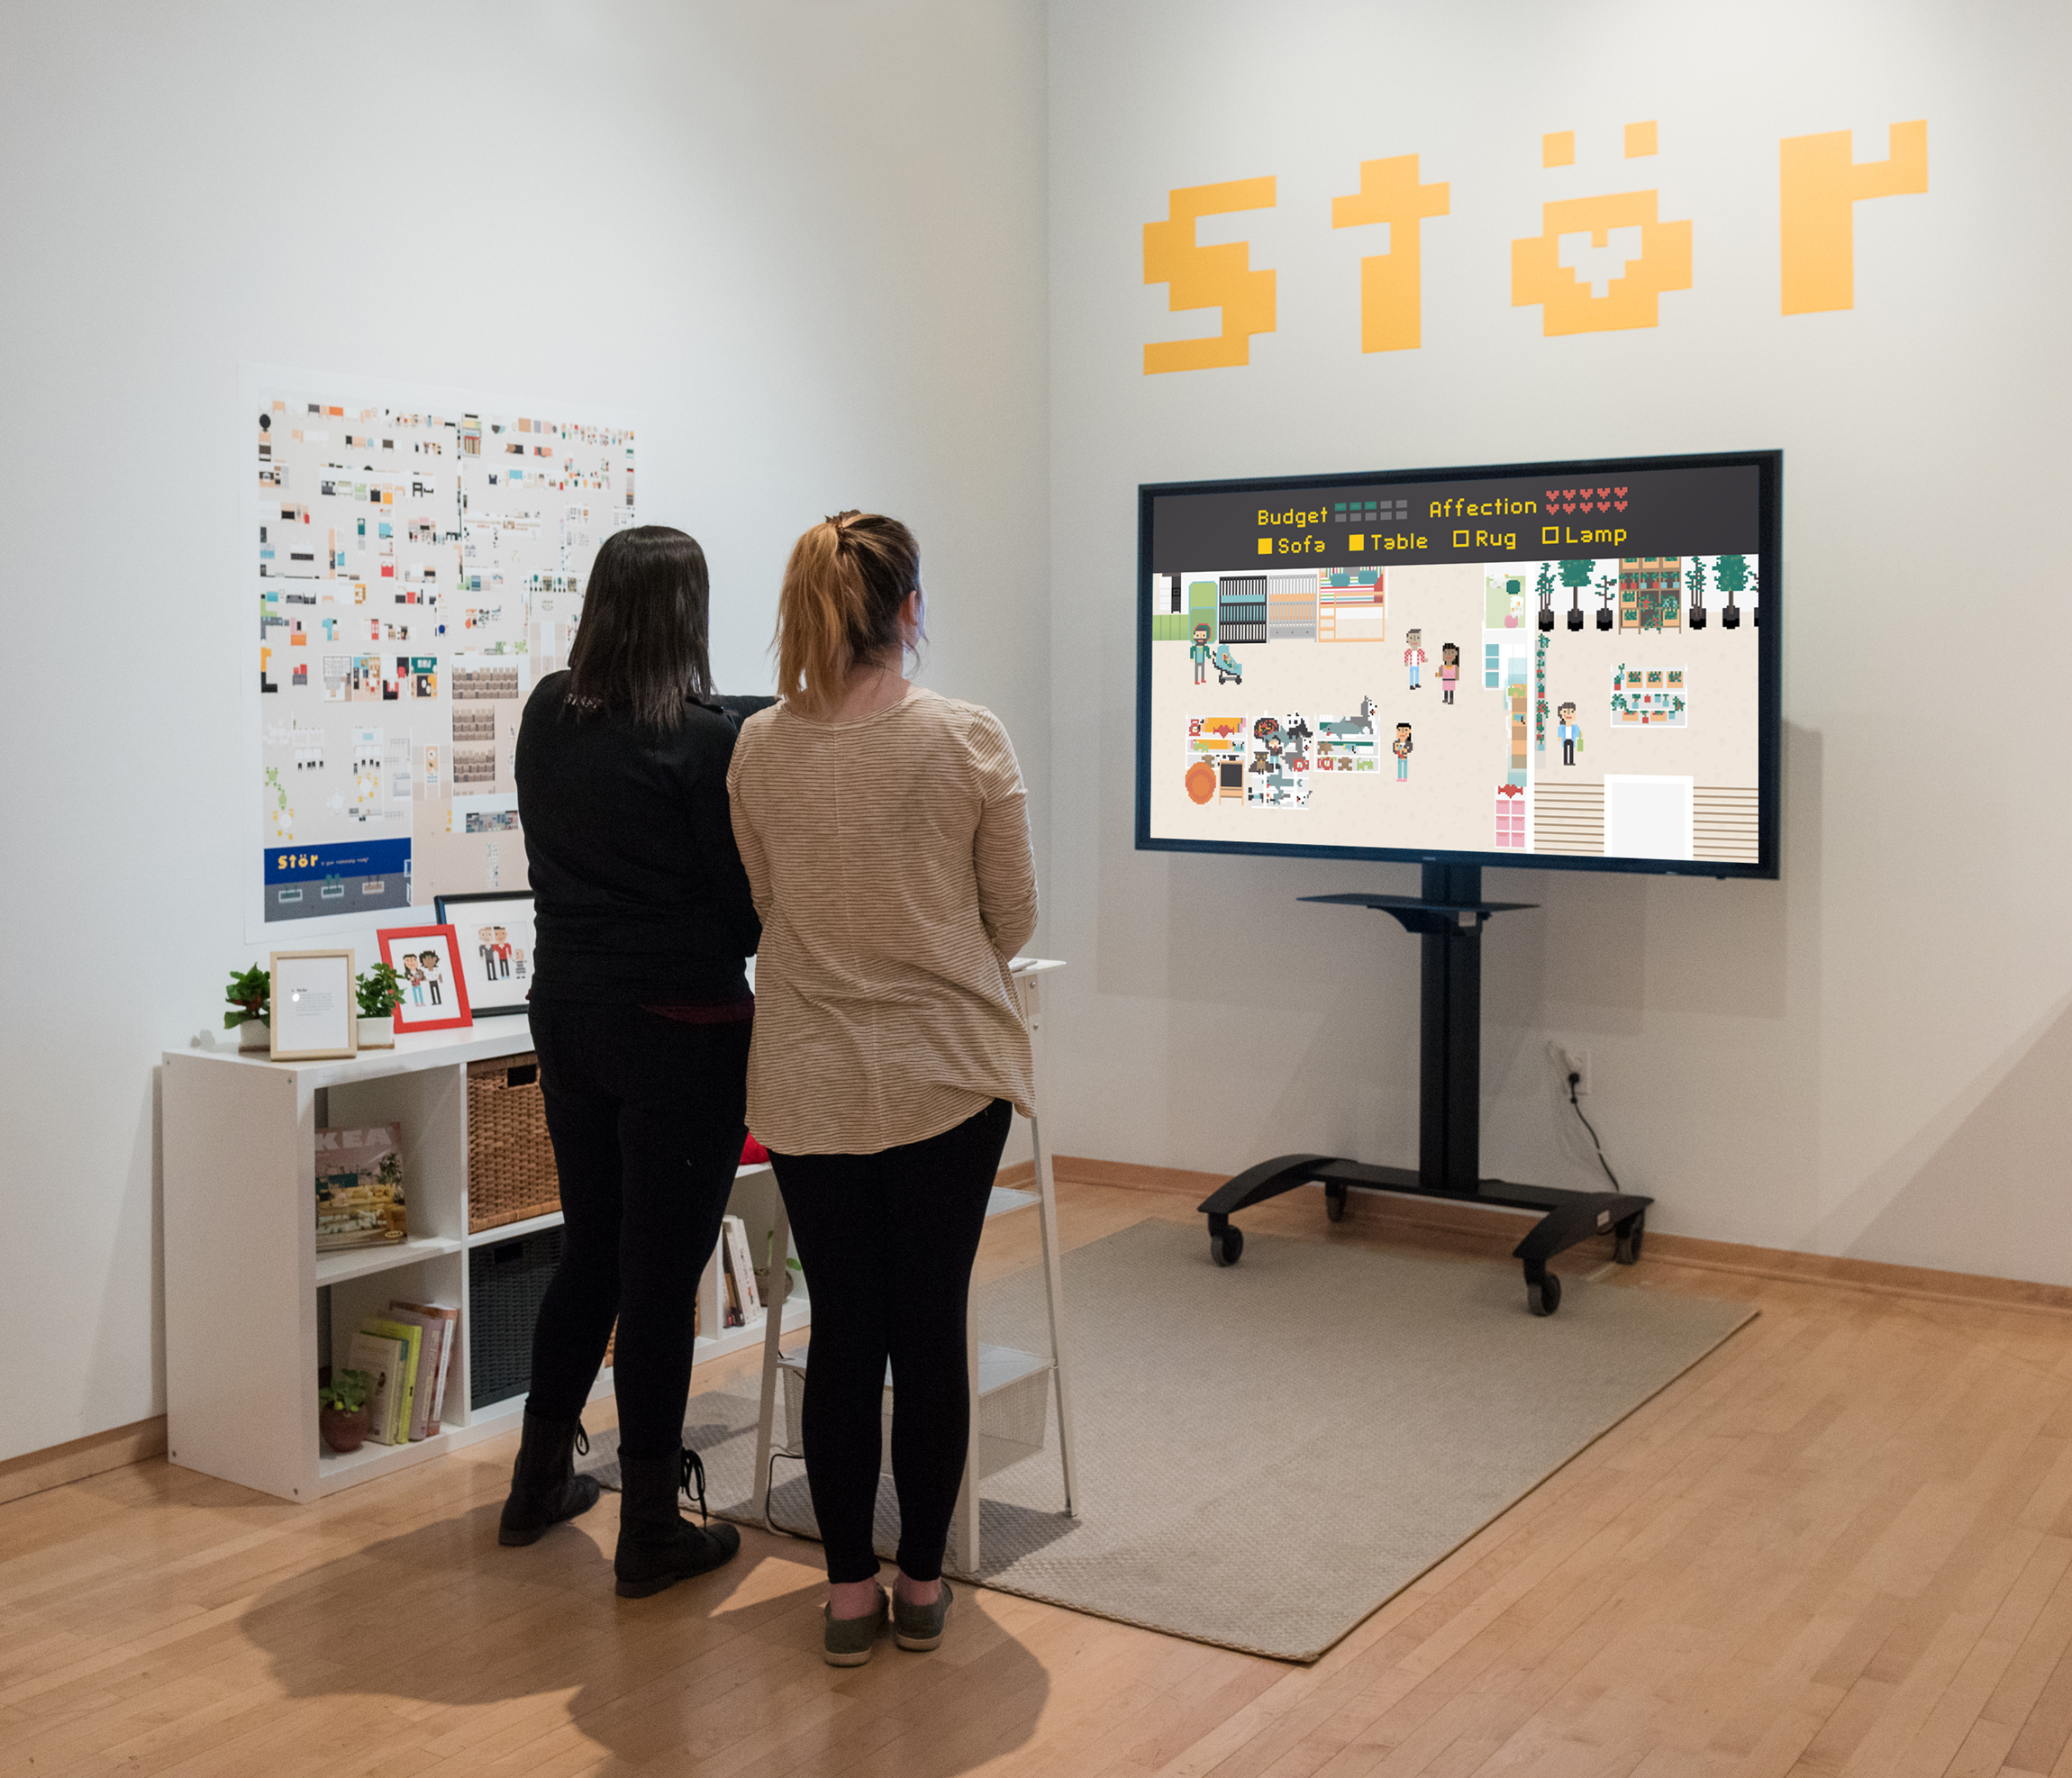 Two women stand in front of a large TV playing the game